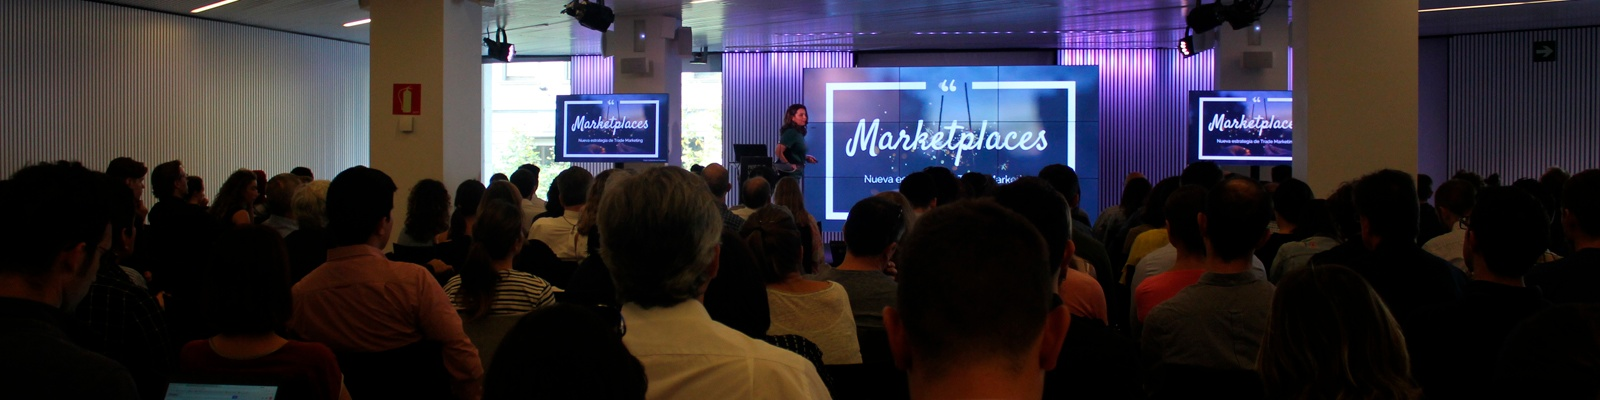 Marketplaces : La conquista de los grandes escaparates digitales